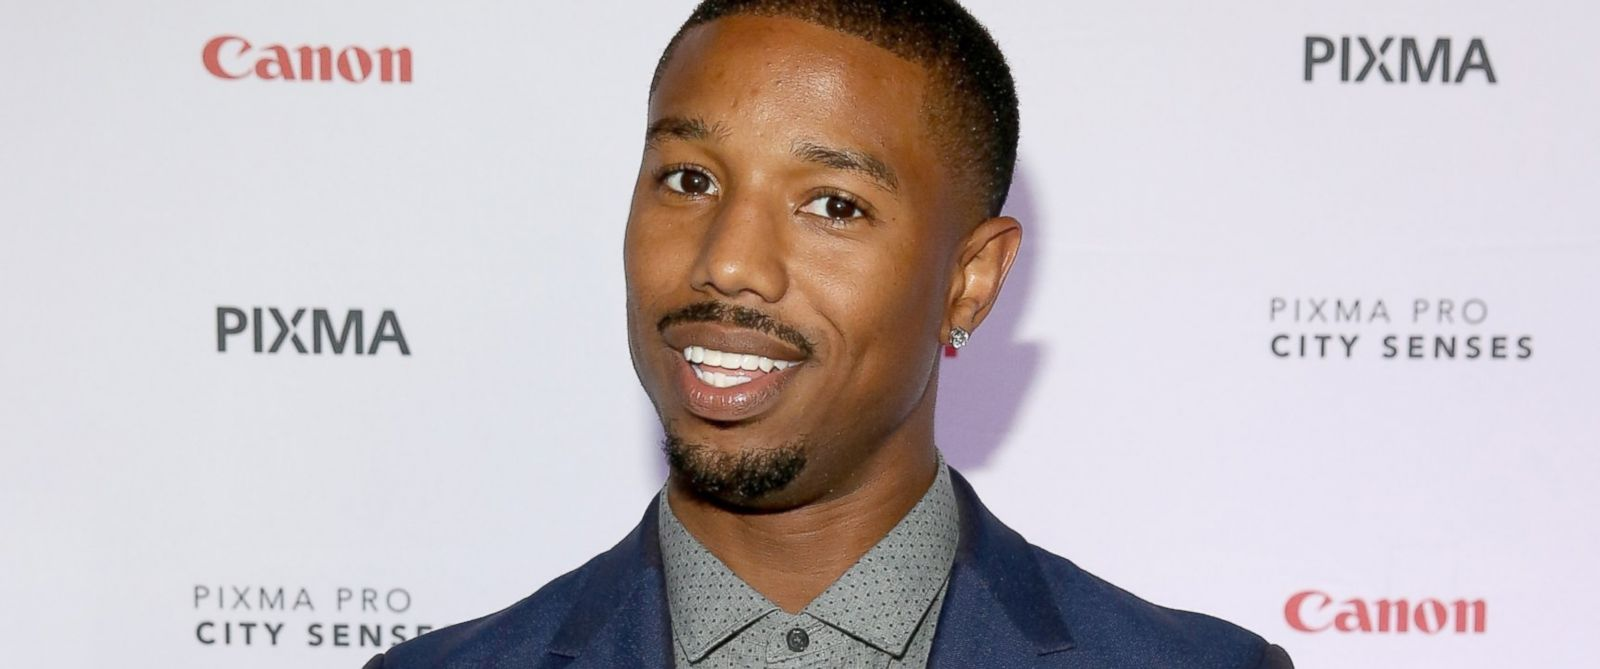 PHOTO: Michael B. Jordan hosts the Canon PIXMA PRO City Senses Galary at Austin Music Hall in Austin, Oct. 1, 2014.